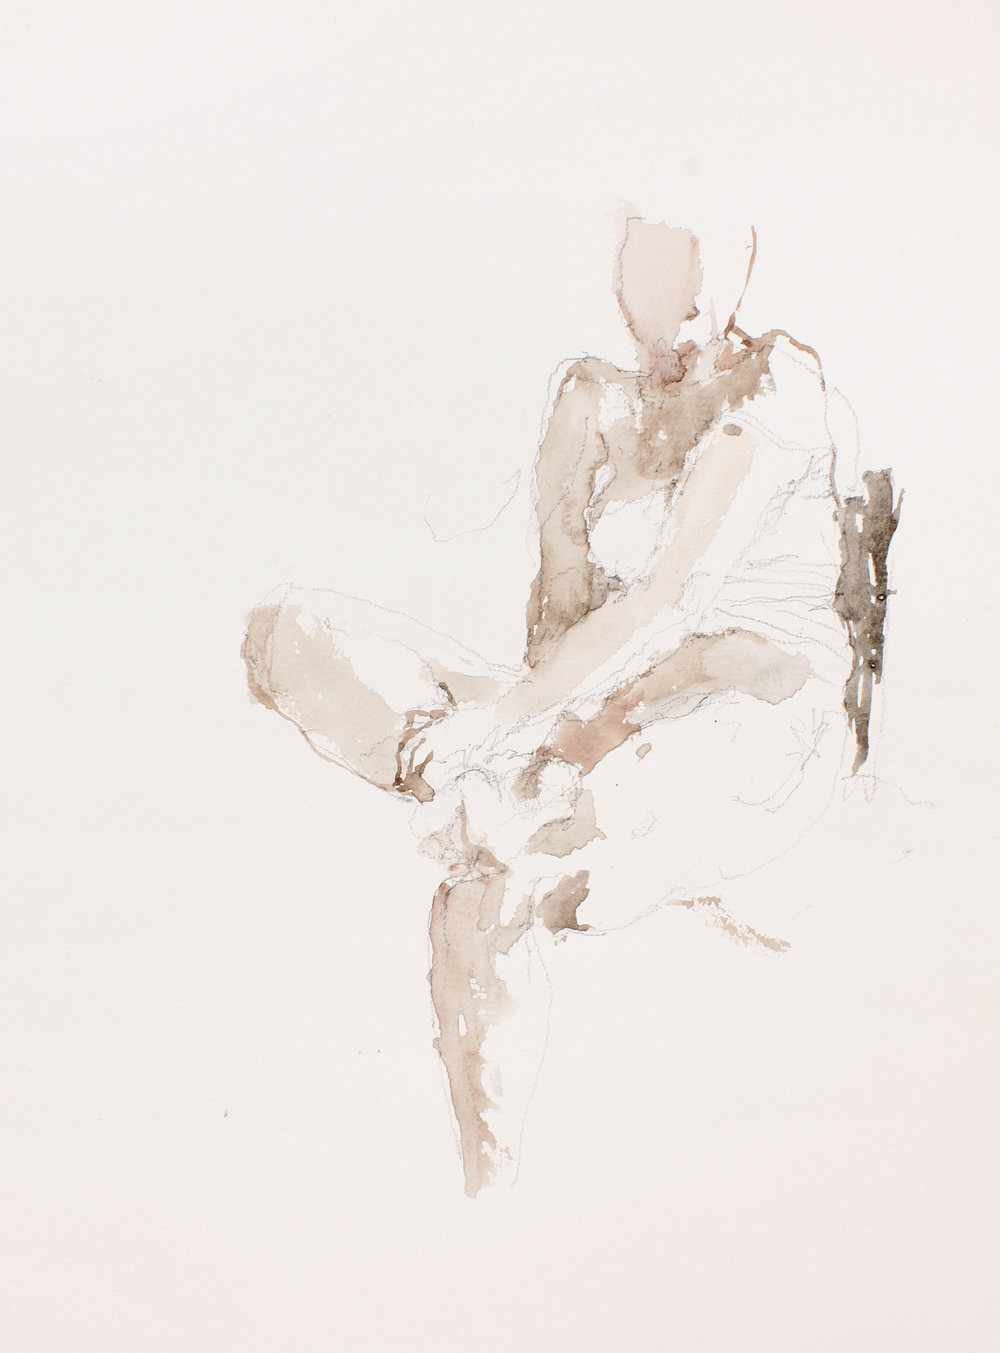 2004_Seated_Nude_Holding_Ankle_watercolour_and_pencil_on_paper_15x11inches_WPF089.jpg